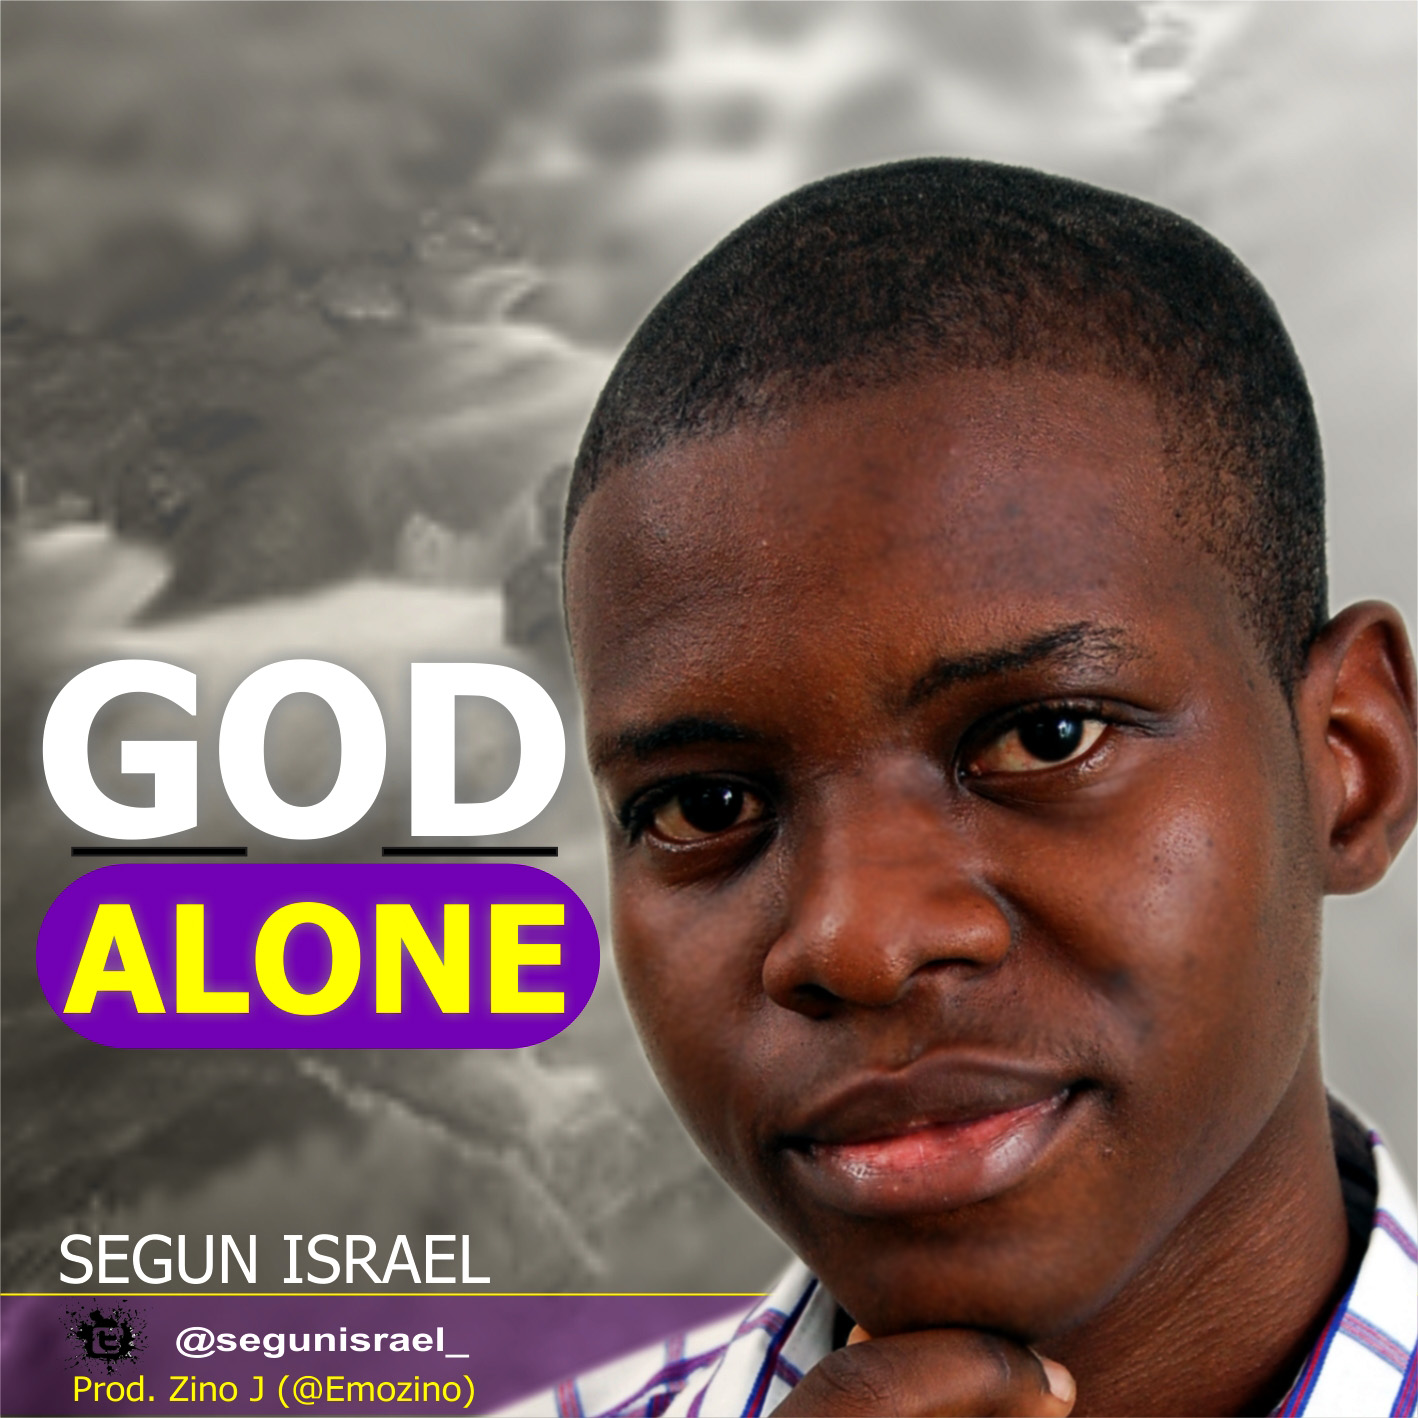 GOD ALONE - Segun Israel [@segunisrael_]